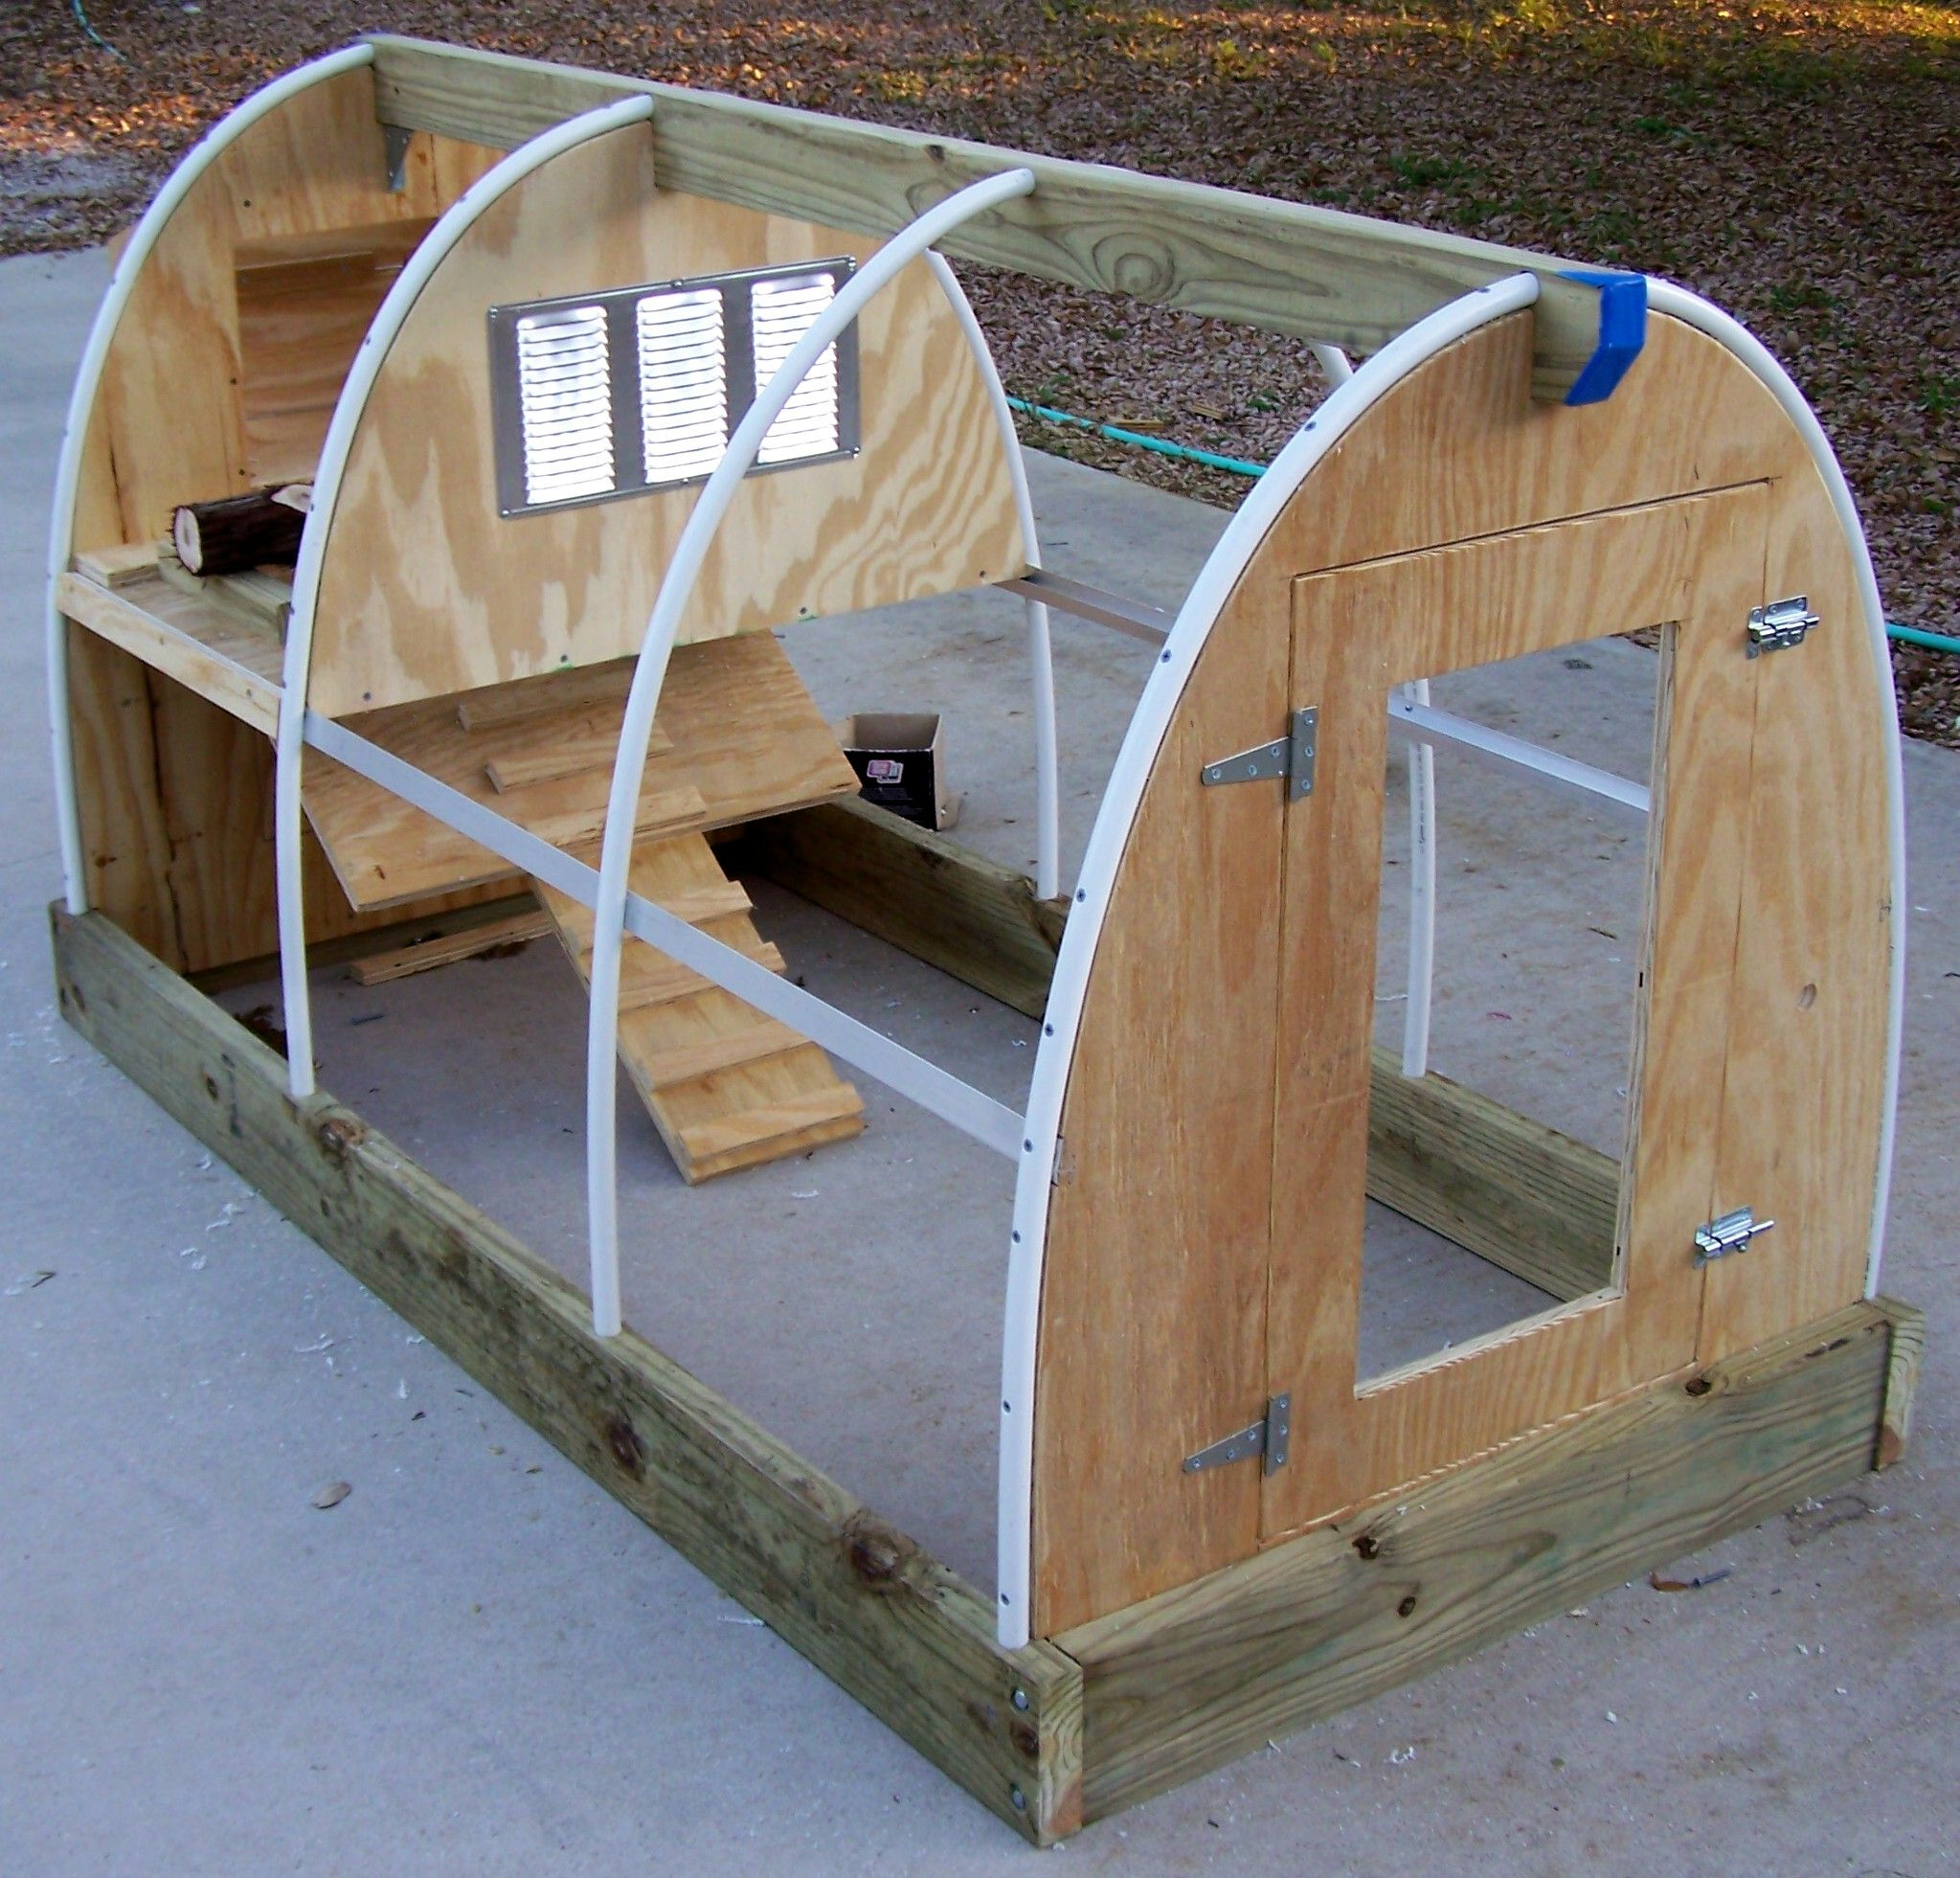 Diy Chicken Coops Plans That Are Easy To Build Diy